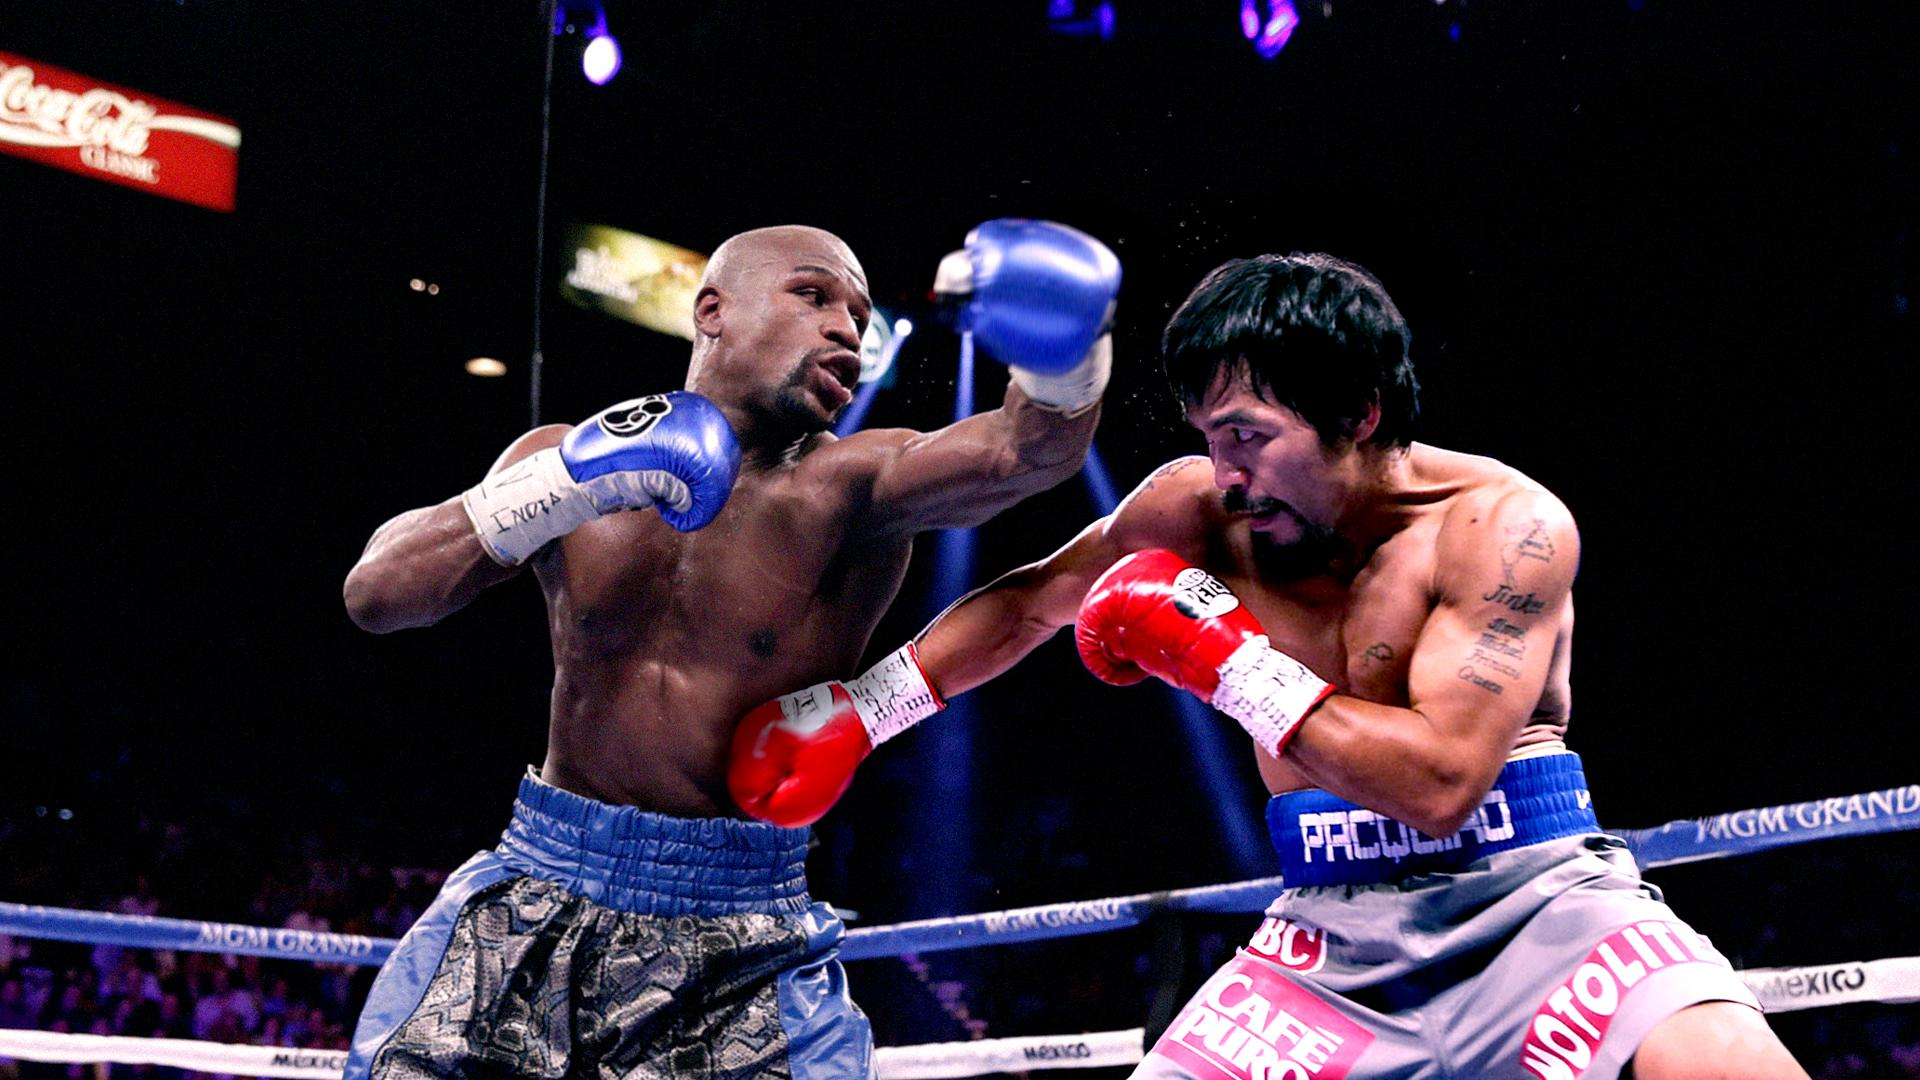 Sport Wallpaper Boxing: Top Free Boxing Backgrounds